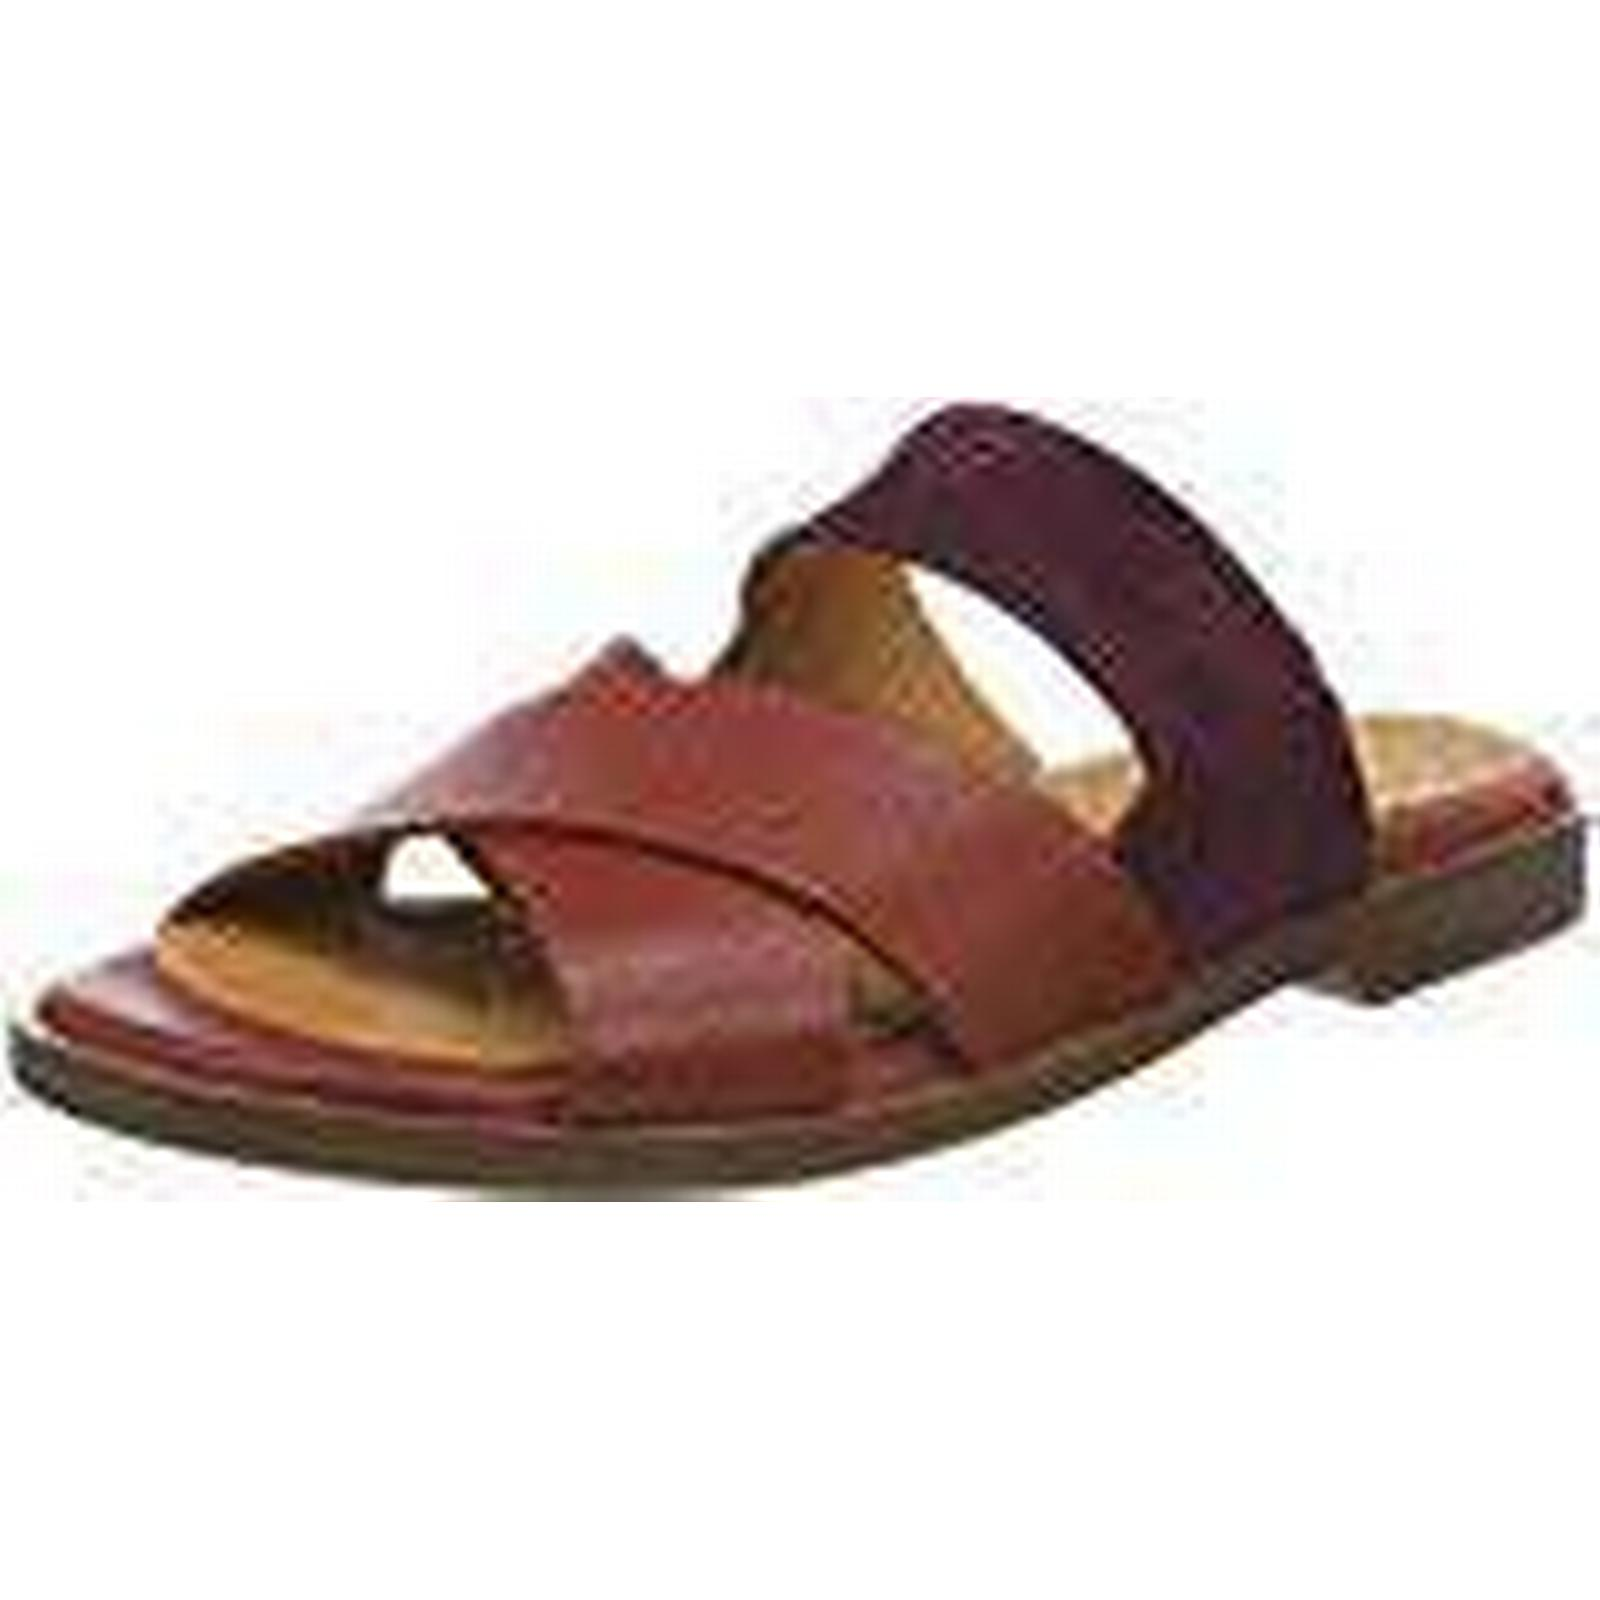 Chie Mihara Women's Wanda Mules, 5 Red Arles Brick-jan Burdeos, 5 Mules, UK 5 UK d0e7ff